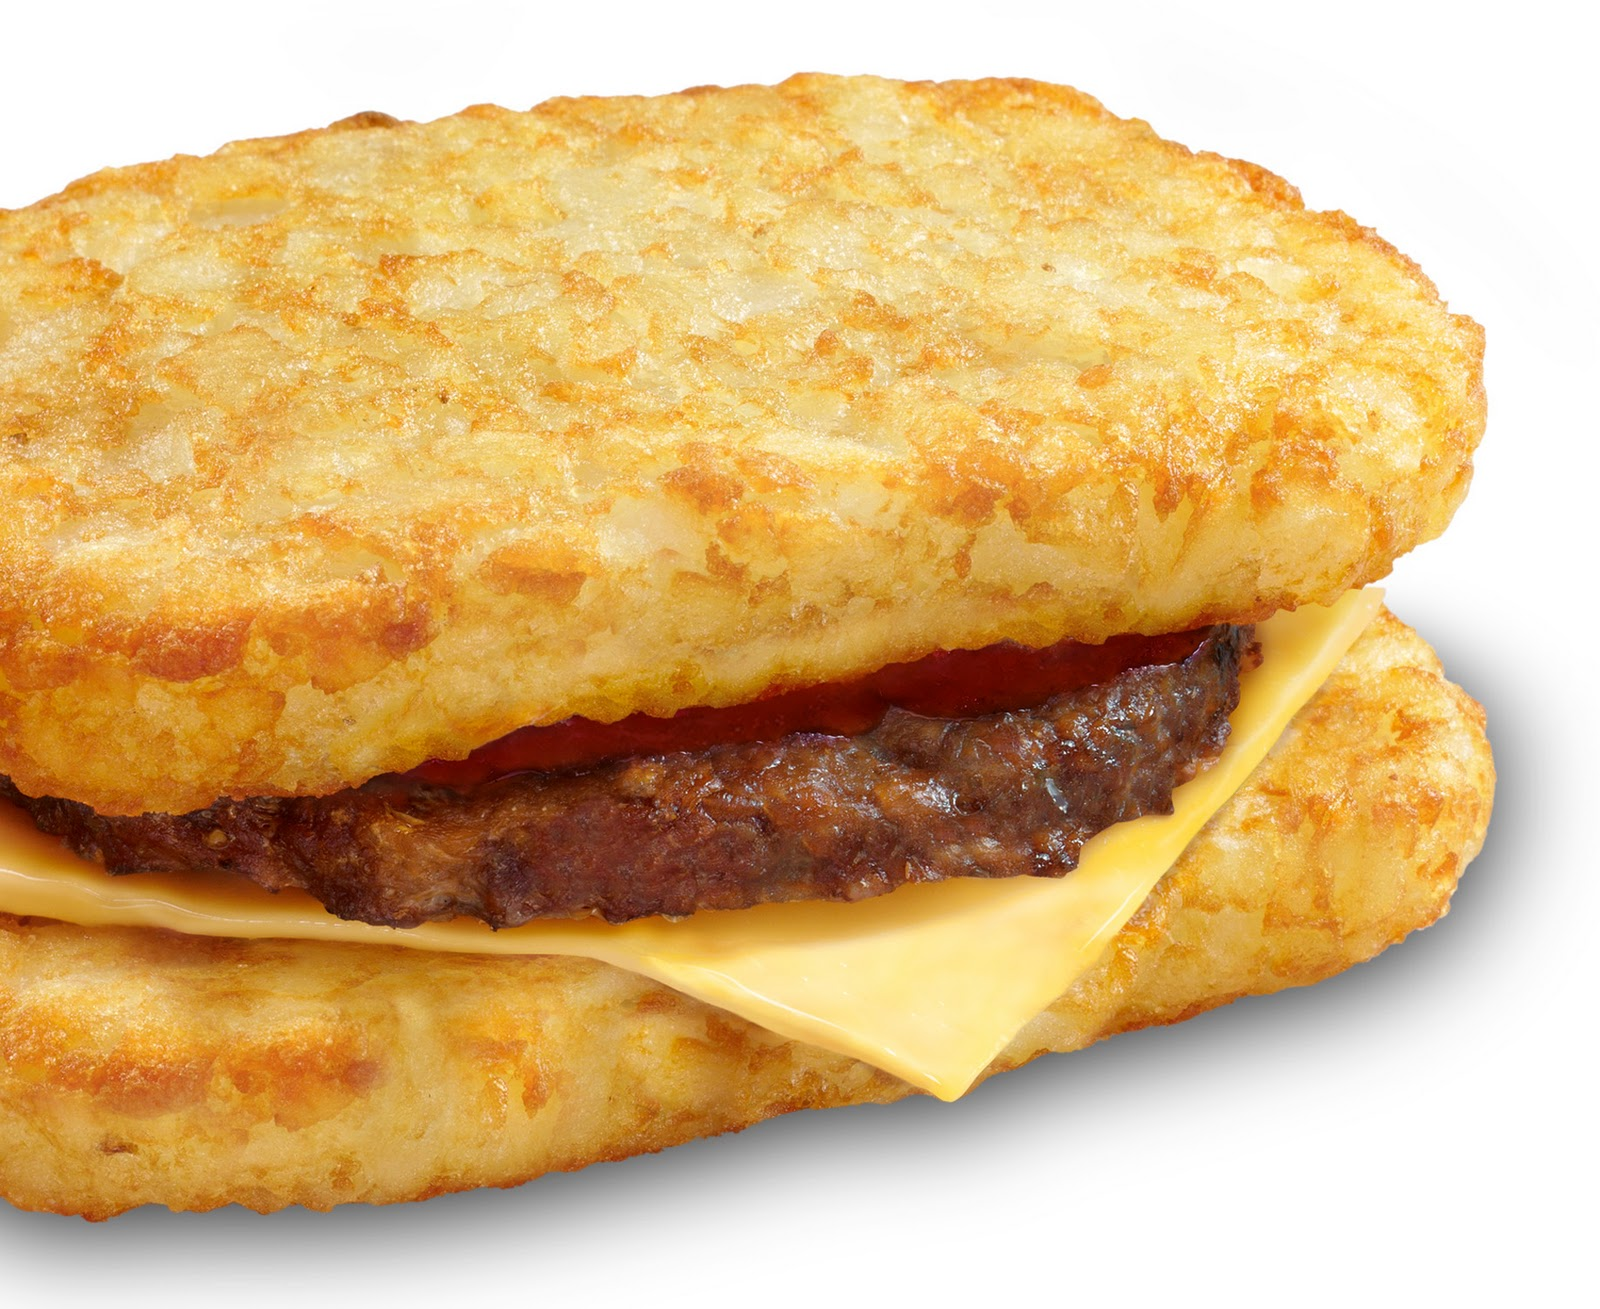 McDonalds Cheeseburger sandwiched between Two Hash Browns